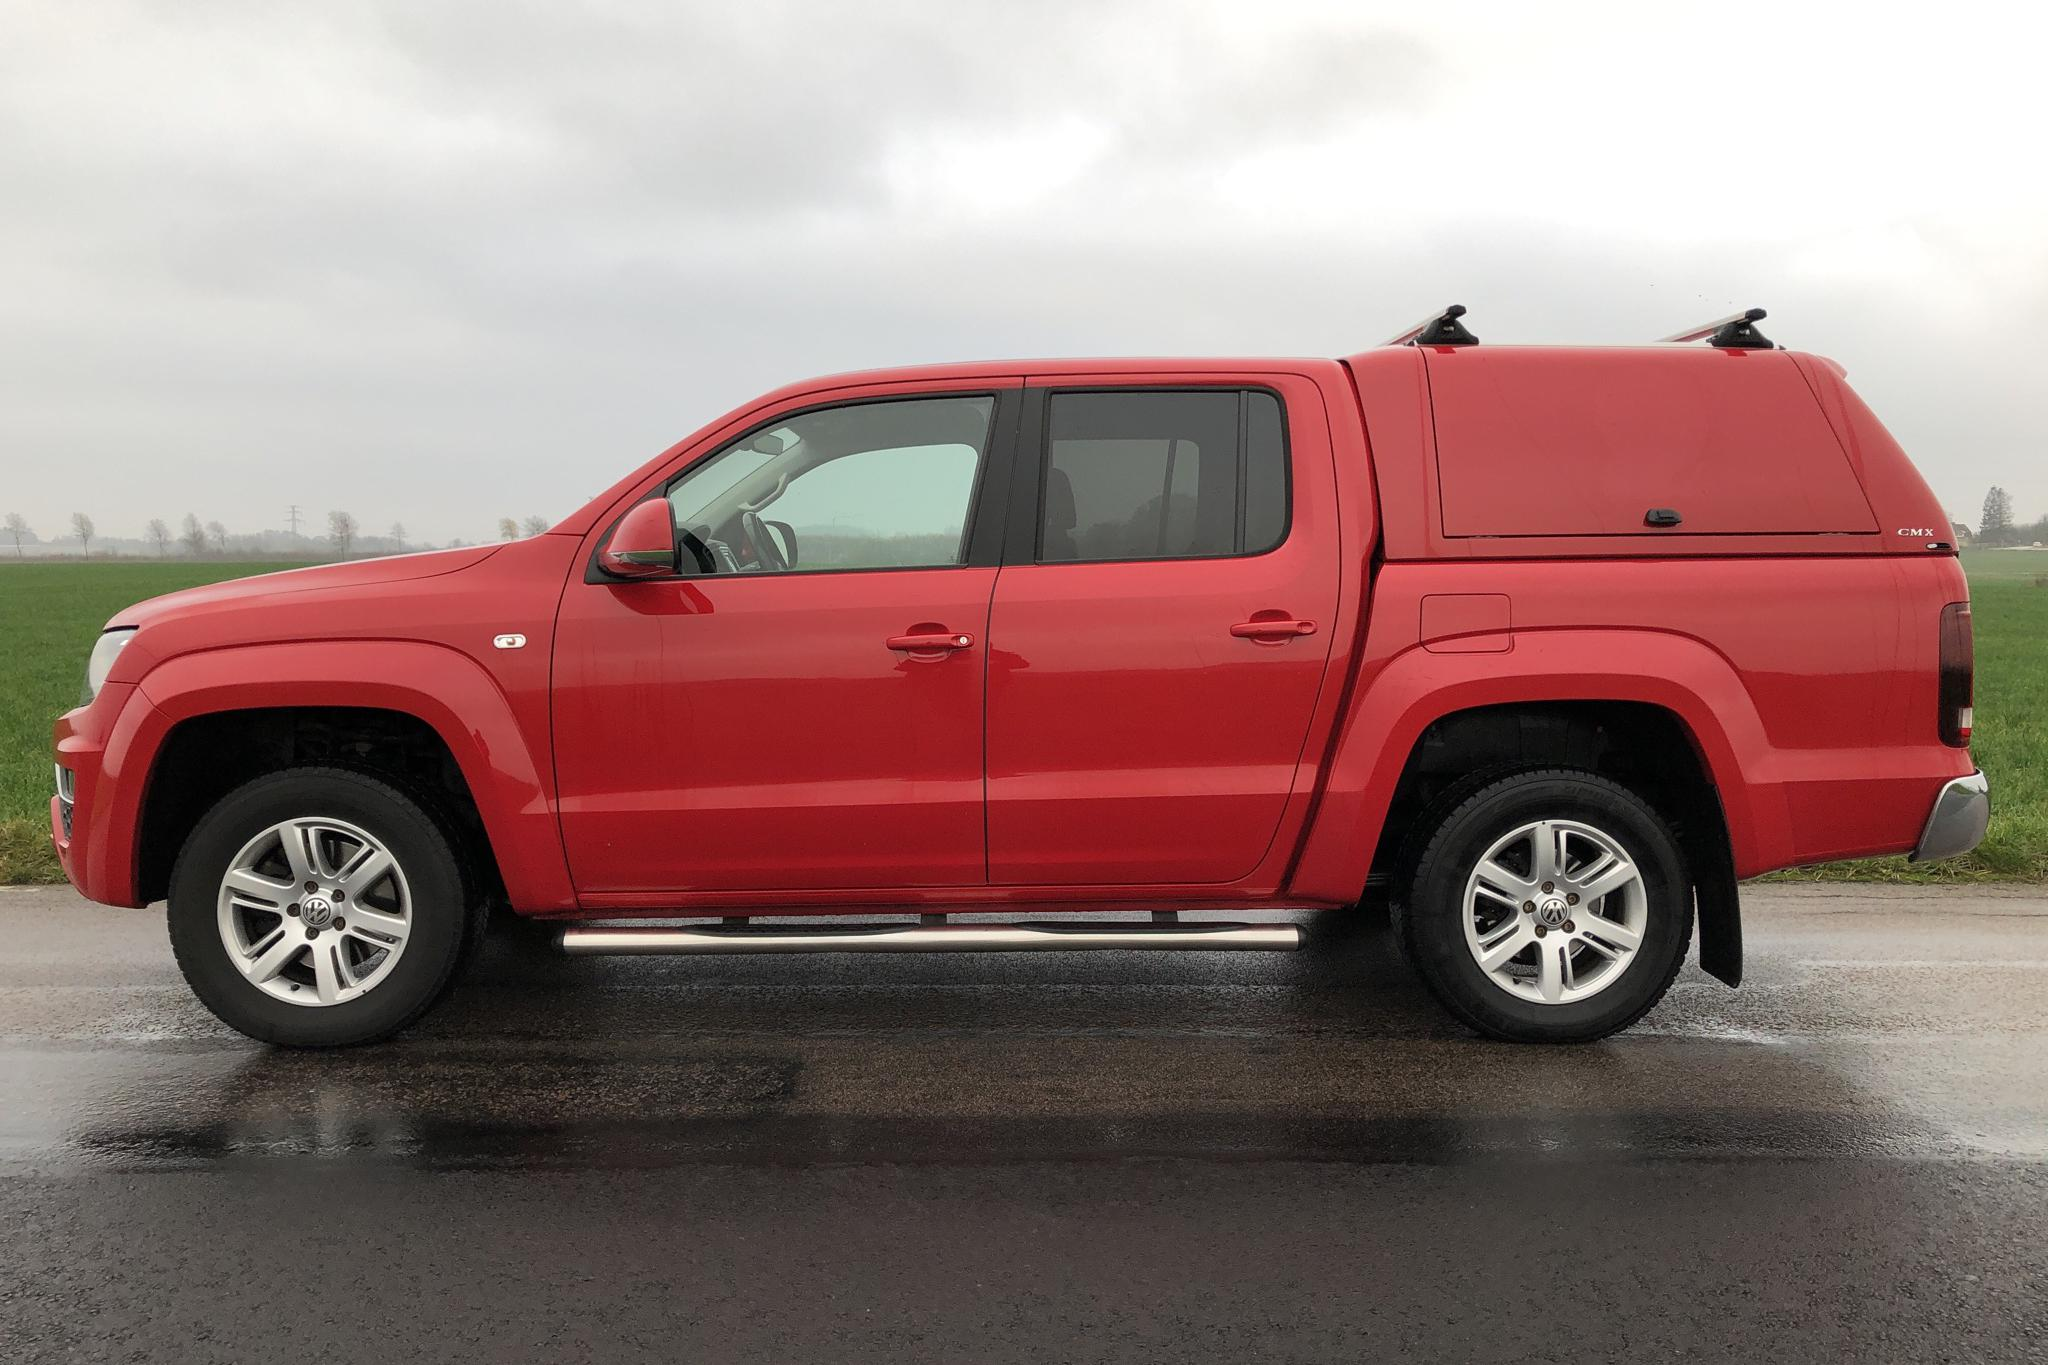 VW Amarok 3.0 TDI 4motion (224hk) - 115 770 km - Automatic - red - 2018